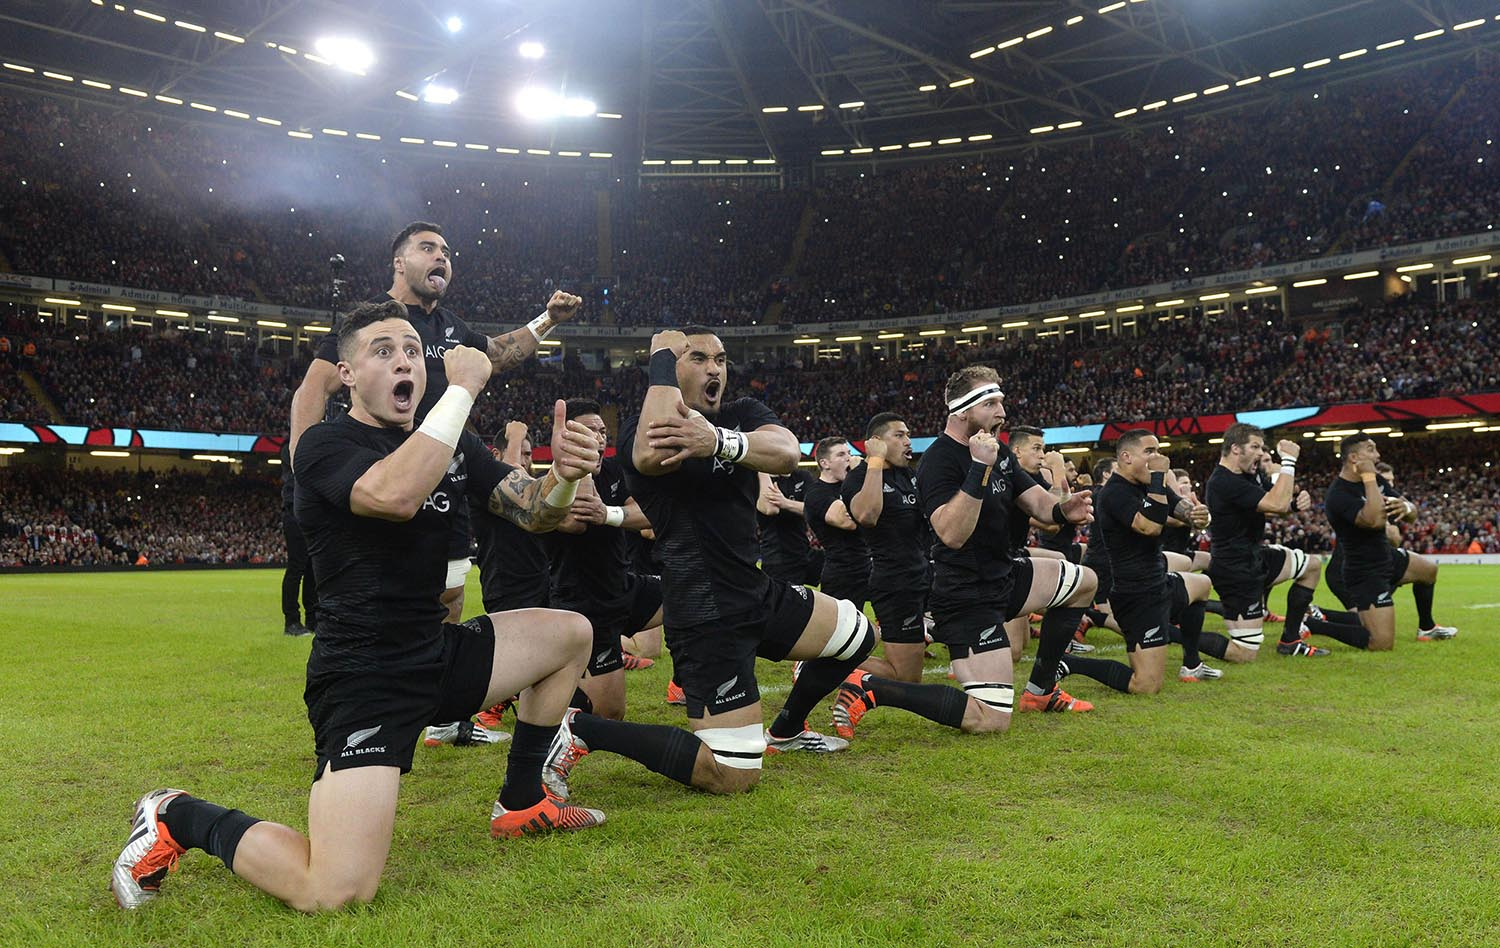 New Zealand All Blacks perform the Haka